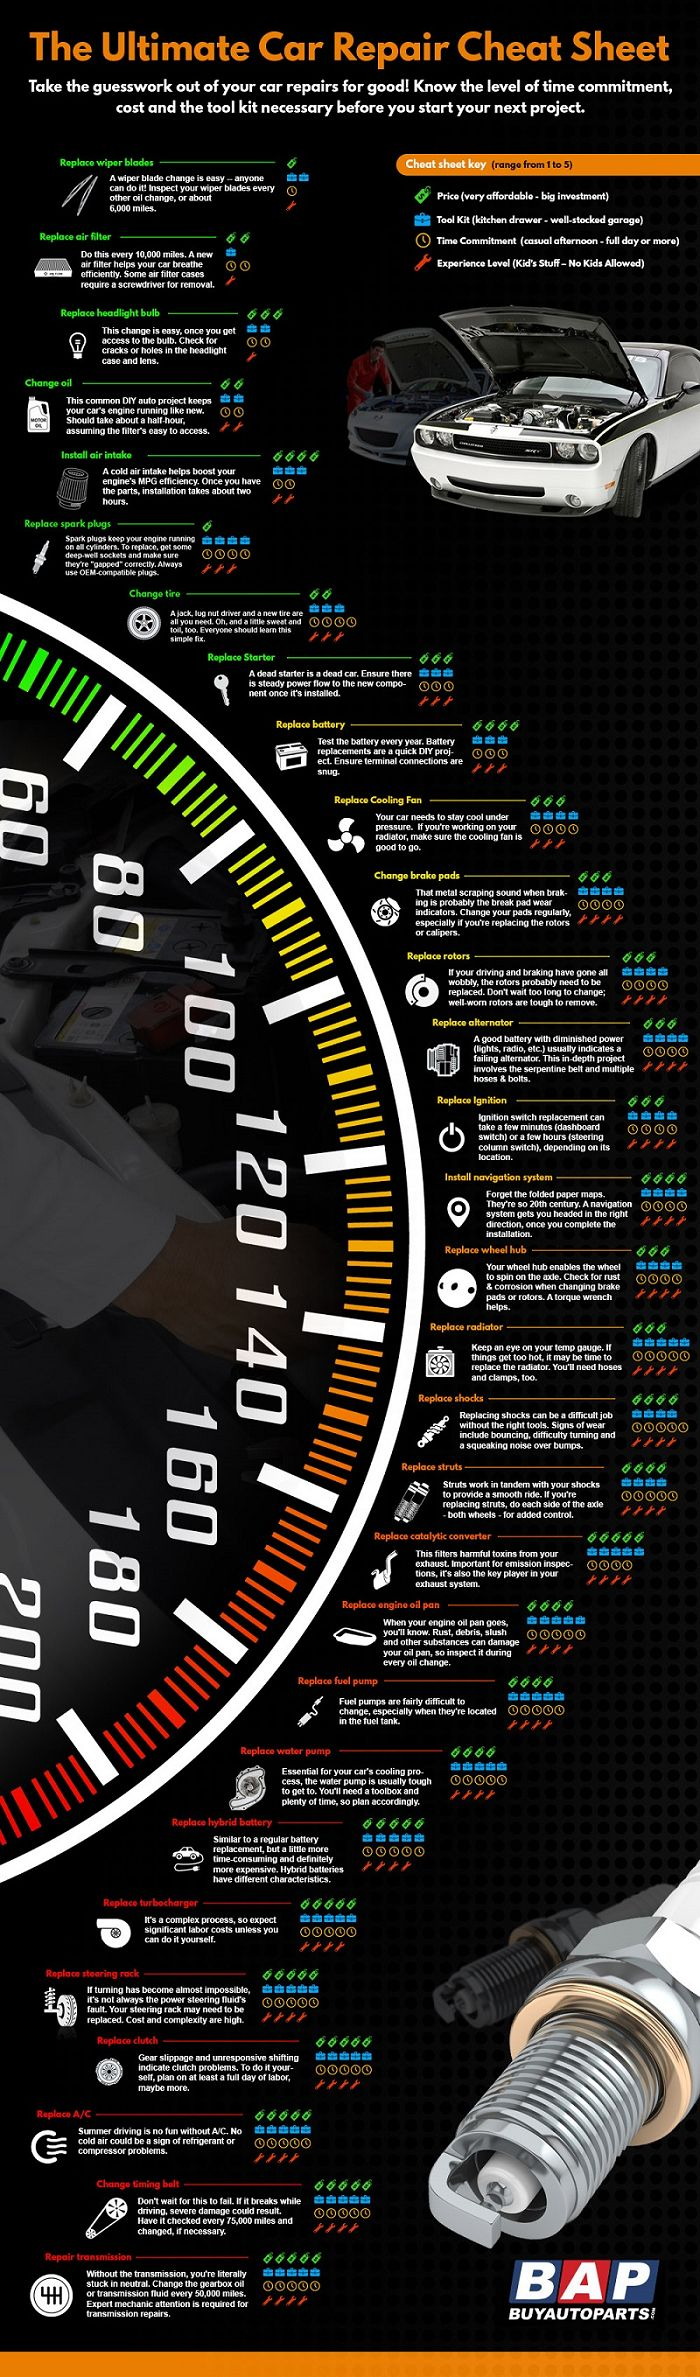 Infographic: The Ultimate Car Repair Cheat Sheet...